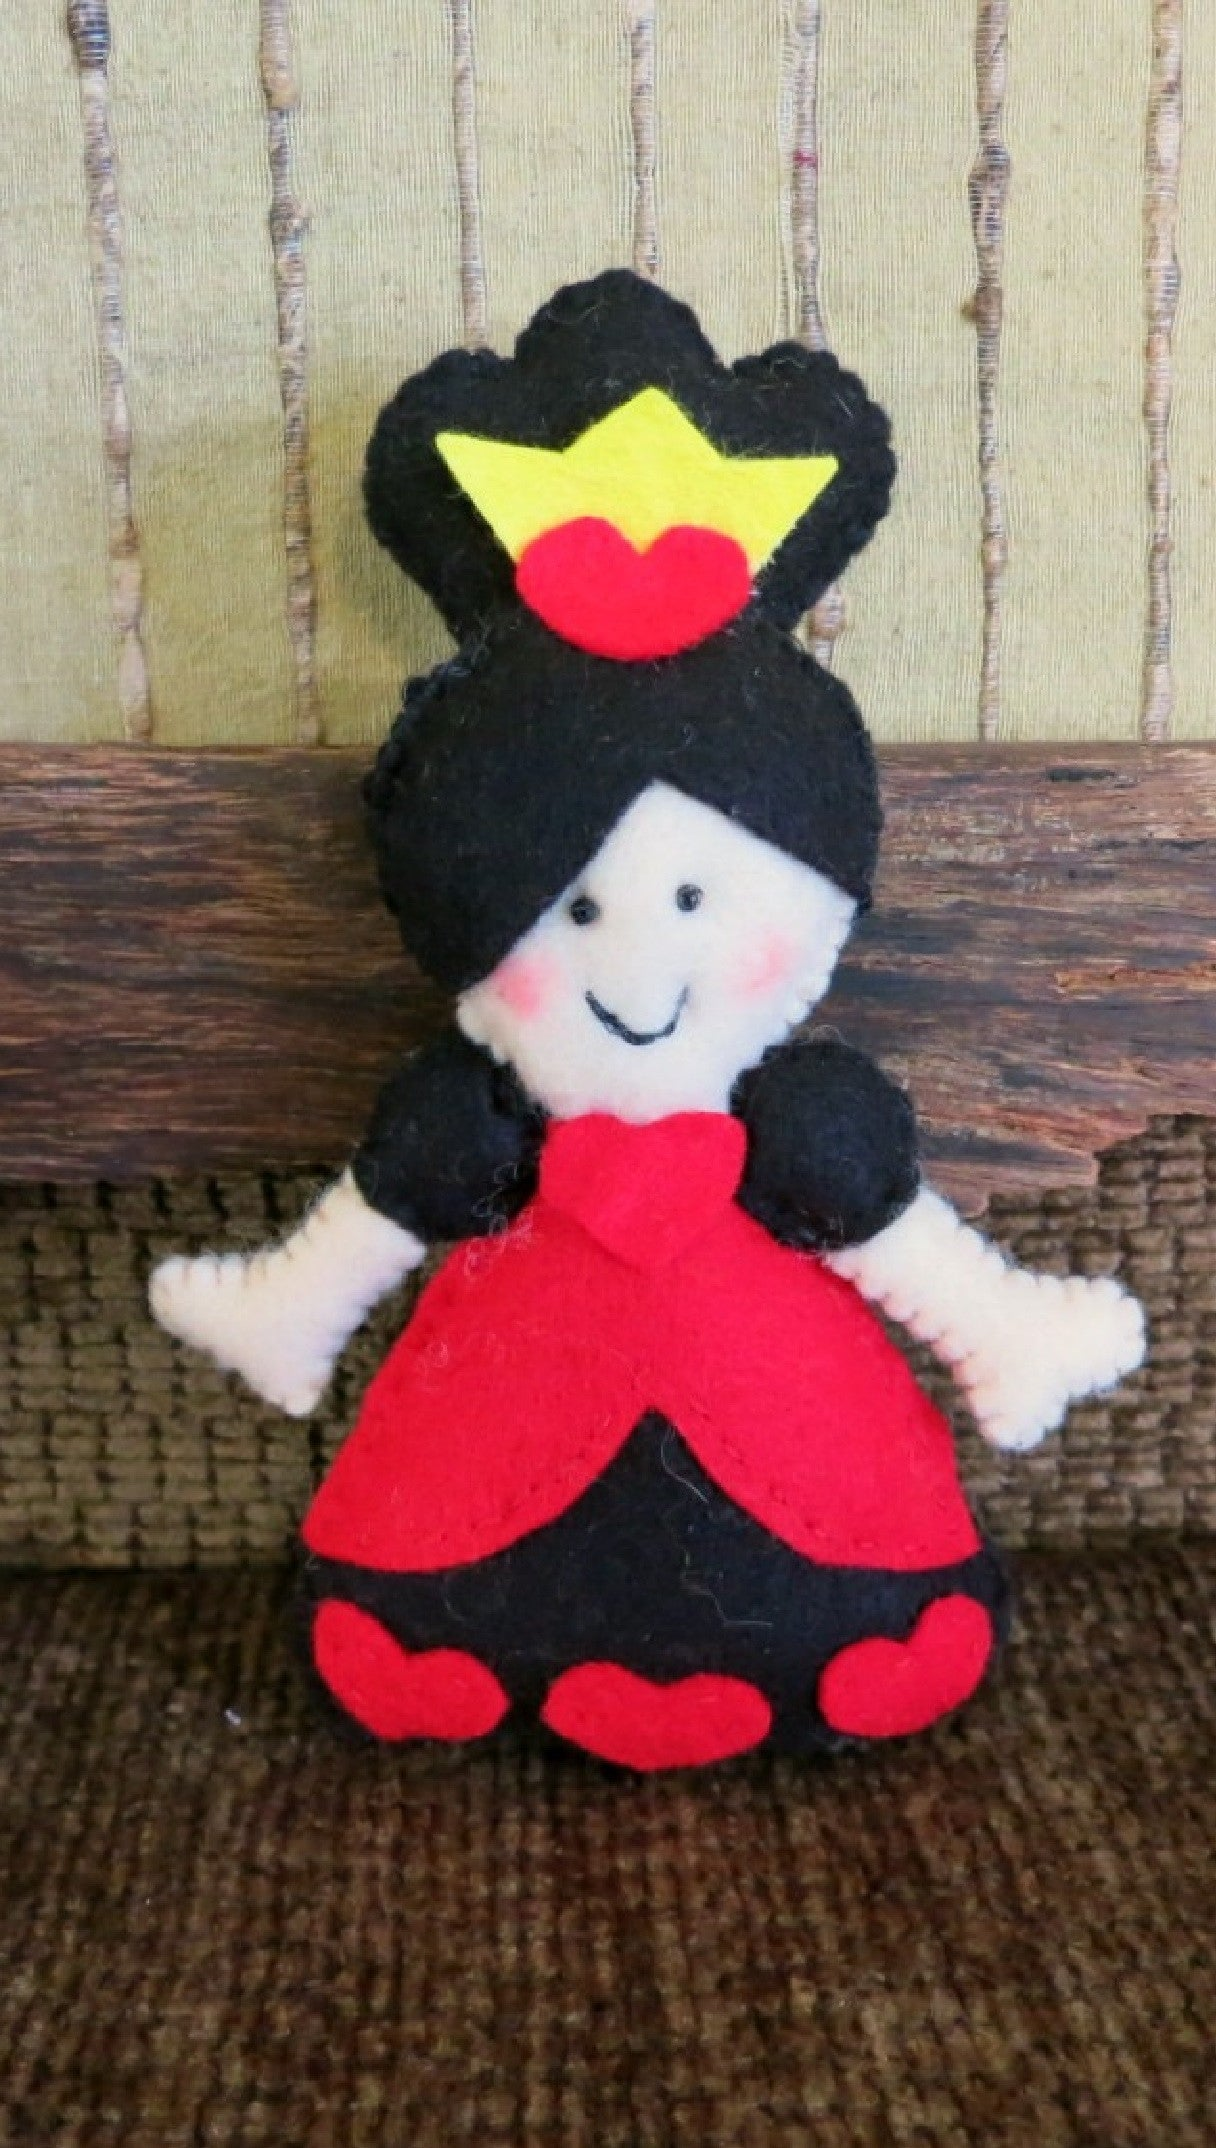 Queen-of-Hearts-stuffed-toy-Nchanted-Gifts